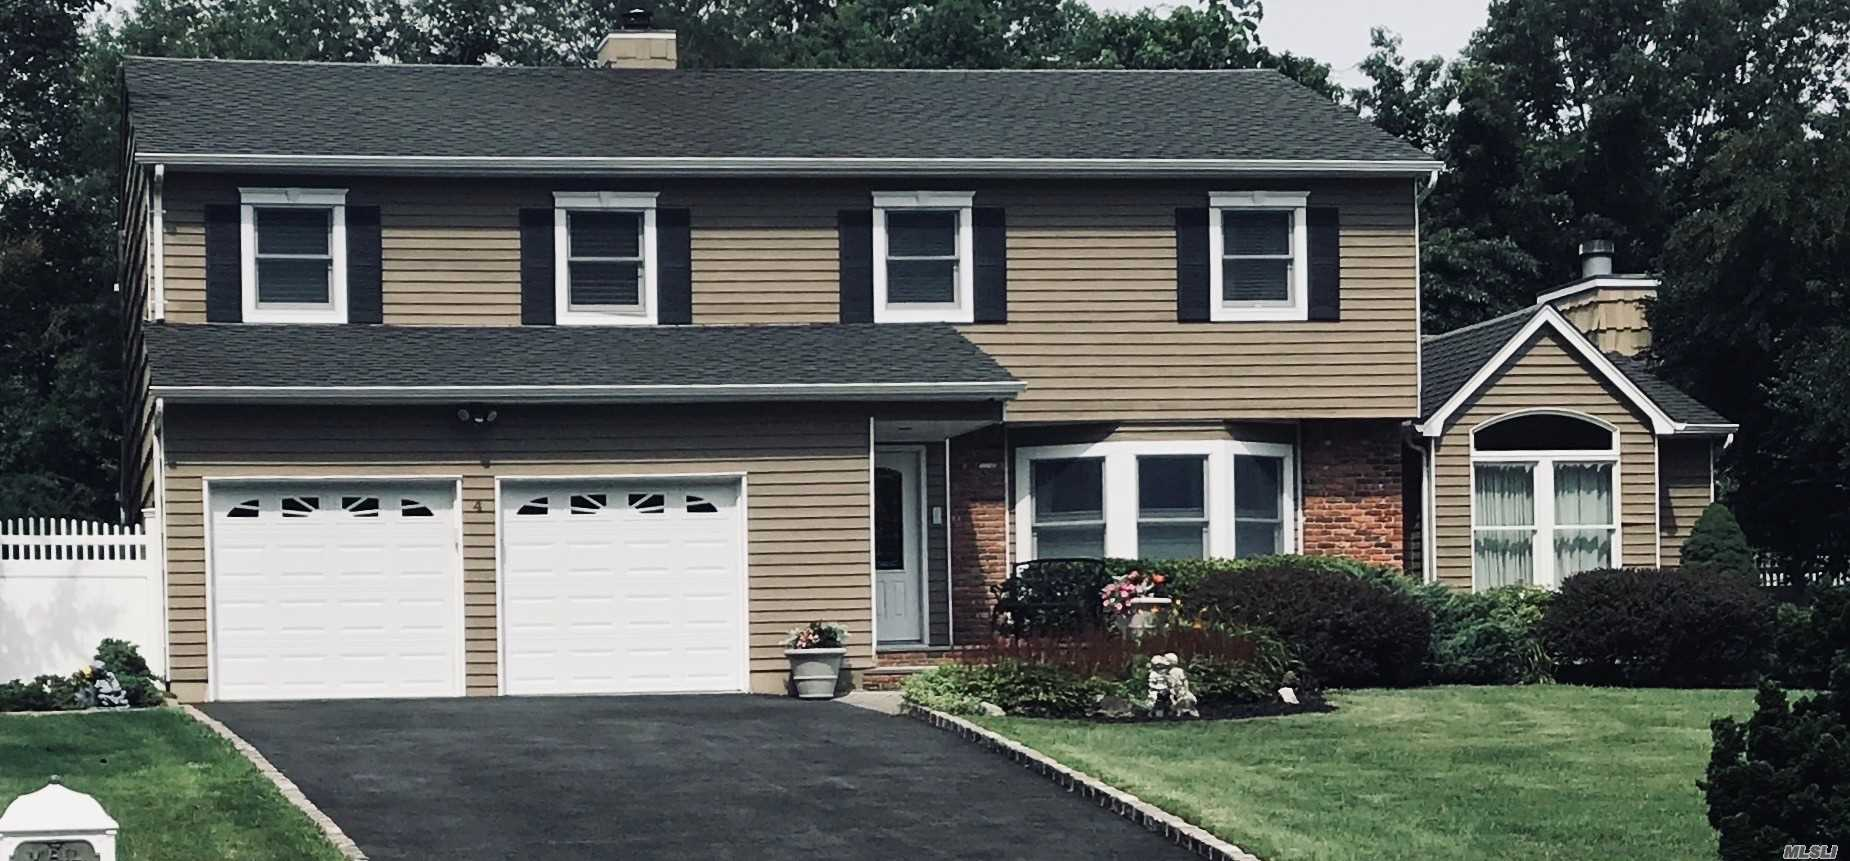 Exp Island Estates 4 Bdrm, 2.5 Bath Colonial, 2 Car Gar.Quiet Cul De Sac On Lake Grove/Centereach Border. Private, Spectacular Backyard, O'sized Cedar Deck, Lagoon Style Builtin Pool W Waterfall And Diving Rock, Techo Block Pavers. Driveway(2017), .Certainteed Landmark Architectural Roofing(2005), Peerless Boiler And Water Htr(2009)(4 Zone Heating), Lennox A/C (2) 3.5 Ton Units(2015), Fin Basement With 9'Ceiling + Friedrich Split A/C, Wood Burning Fire Place W Conversion Option, Updated Security Sys.